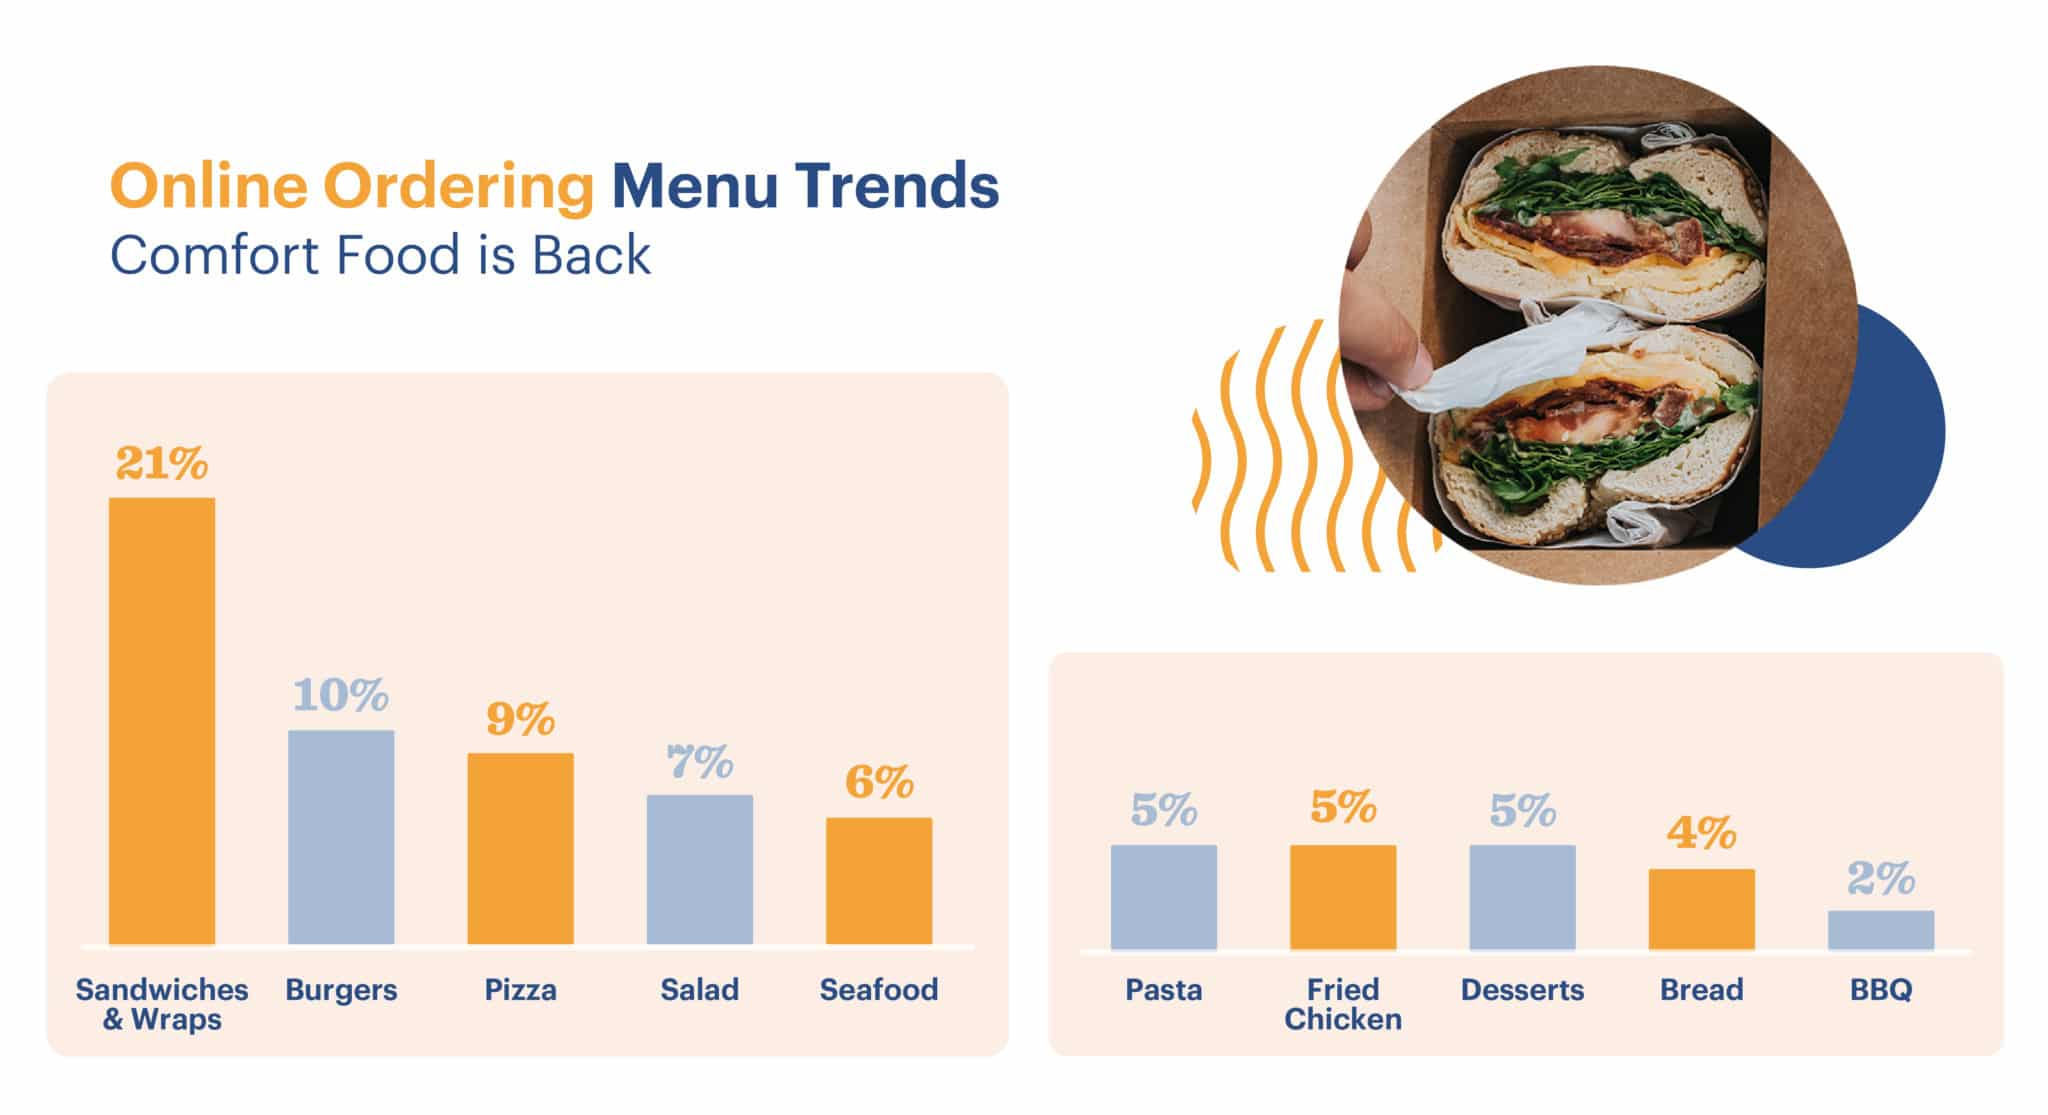 Restaurant Menu Trends How Covid Changed Offerings In 2020